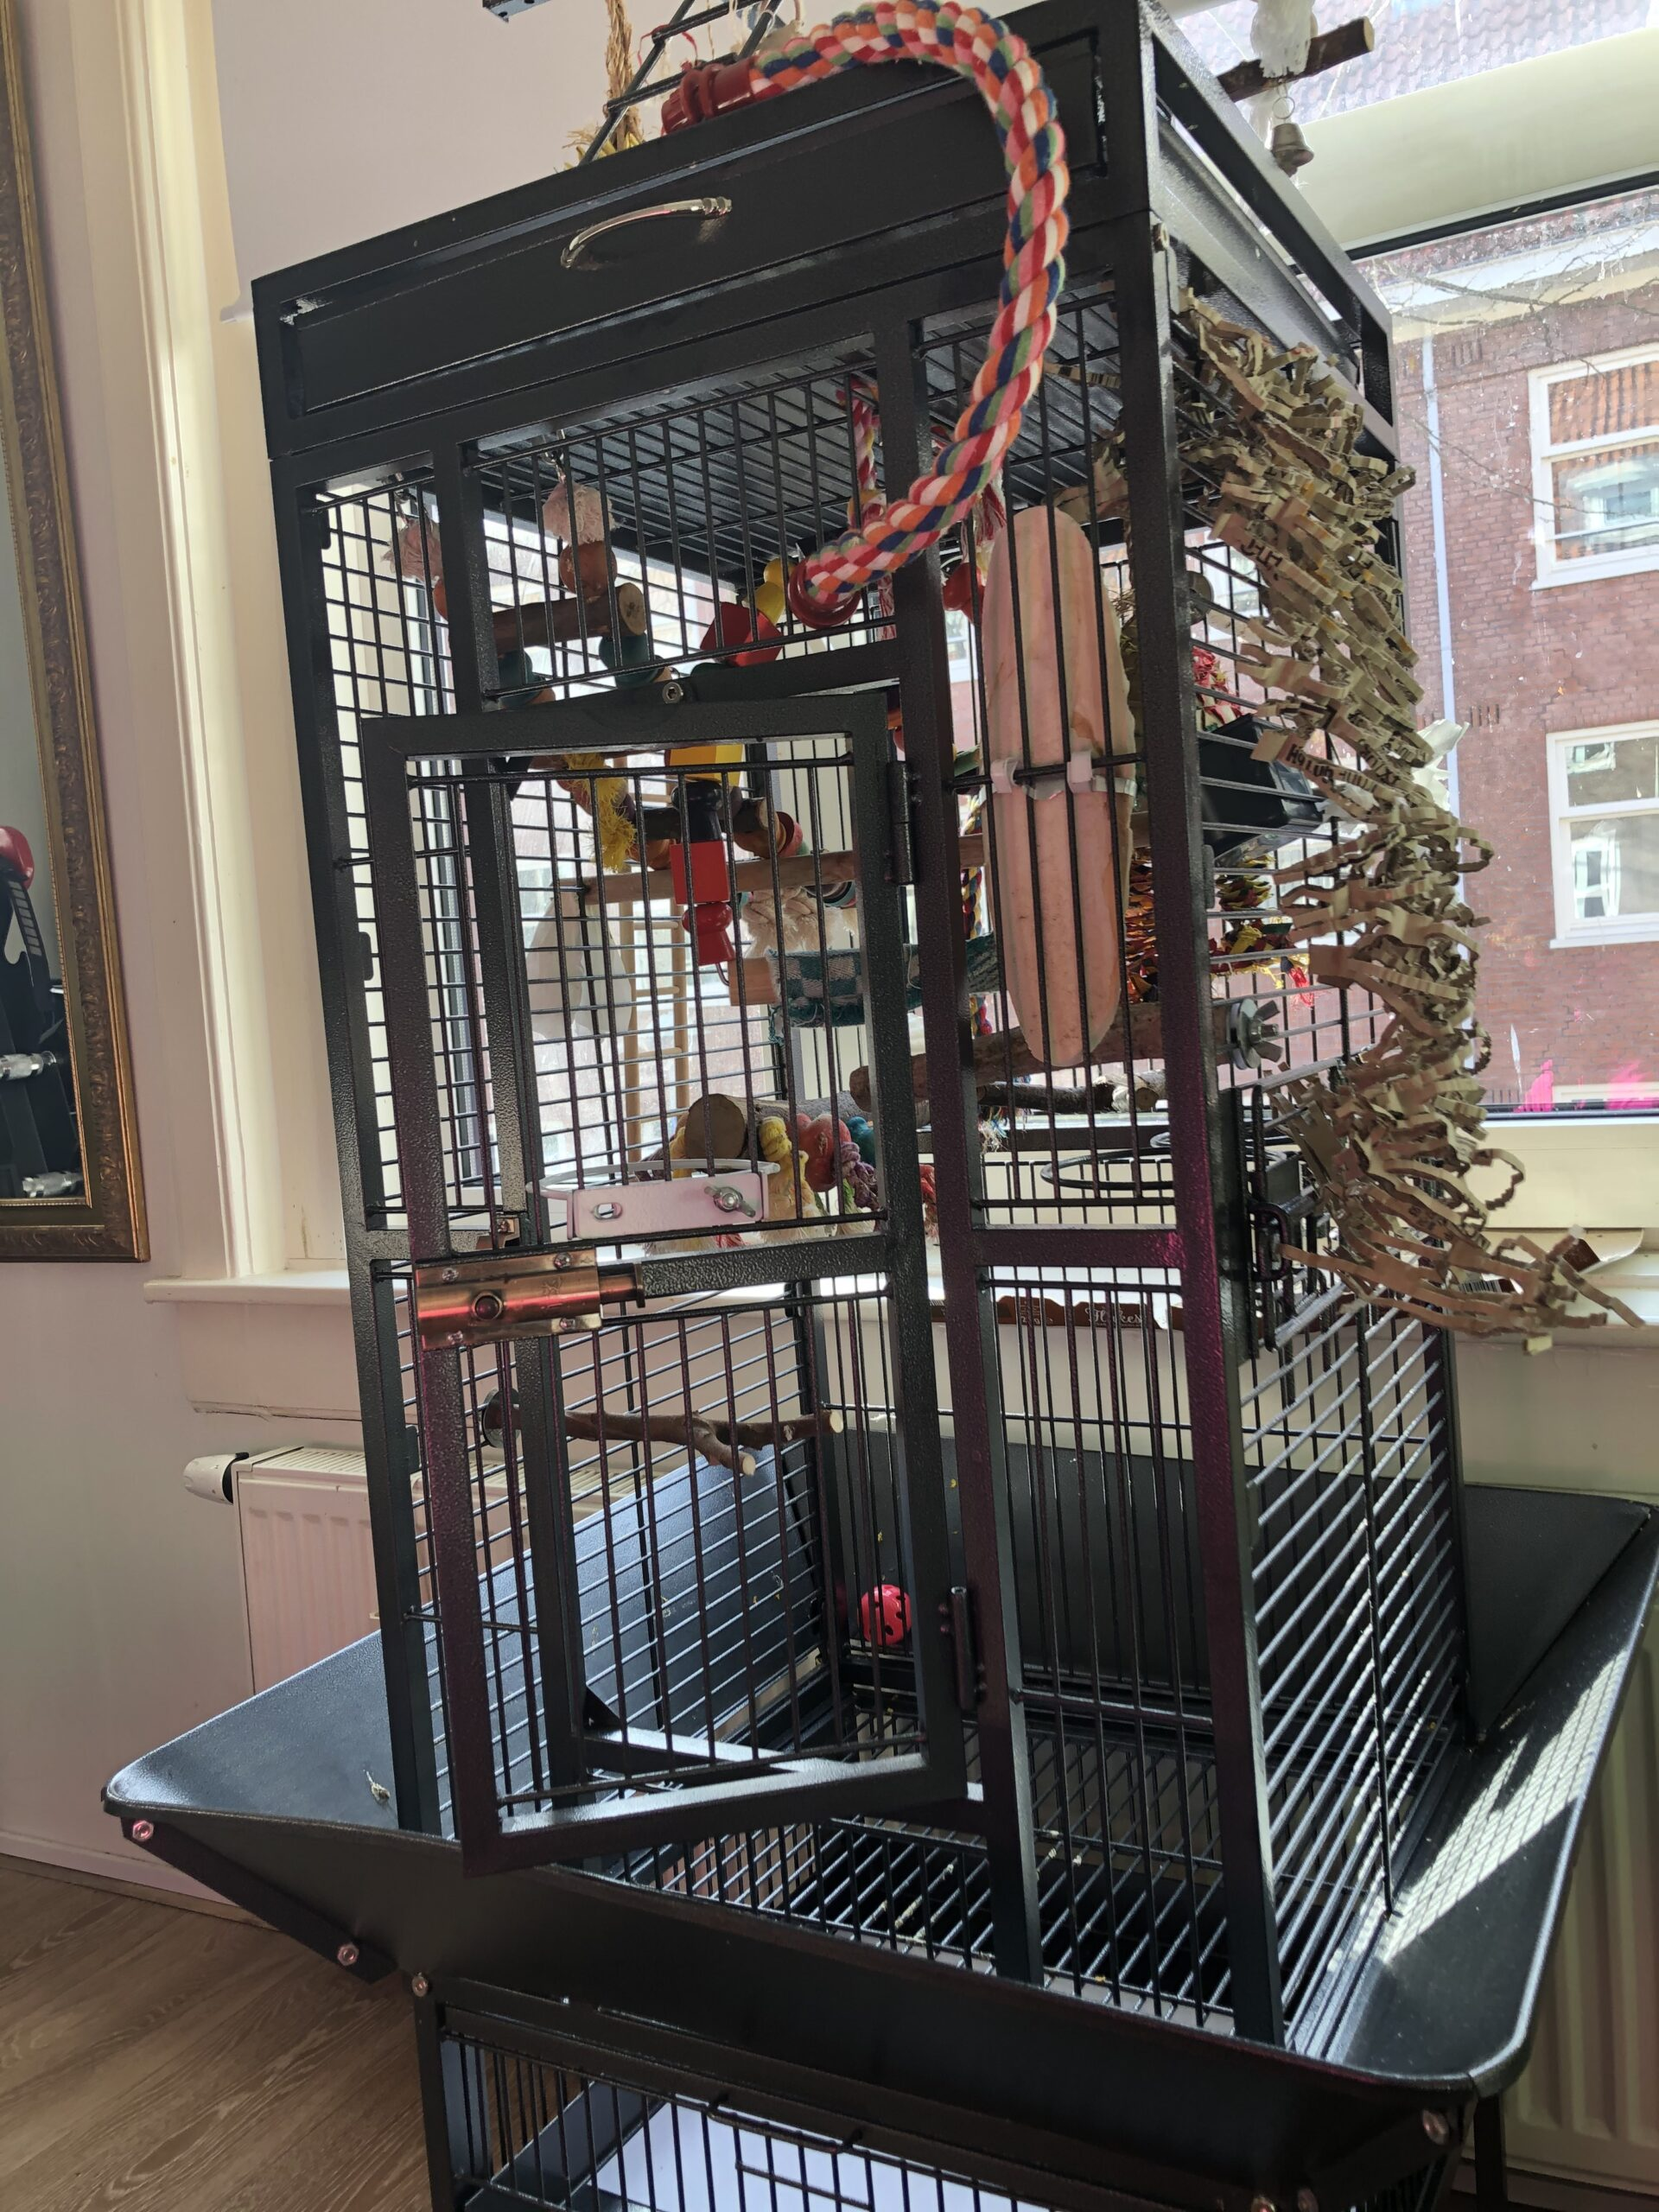 Parrot bird cage equiped with toys and perches